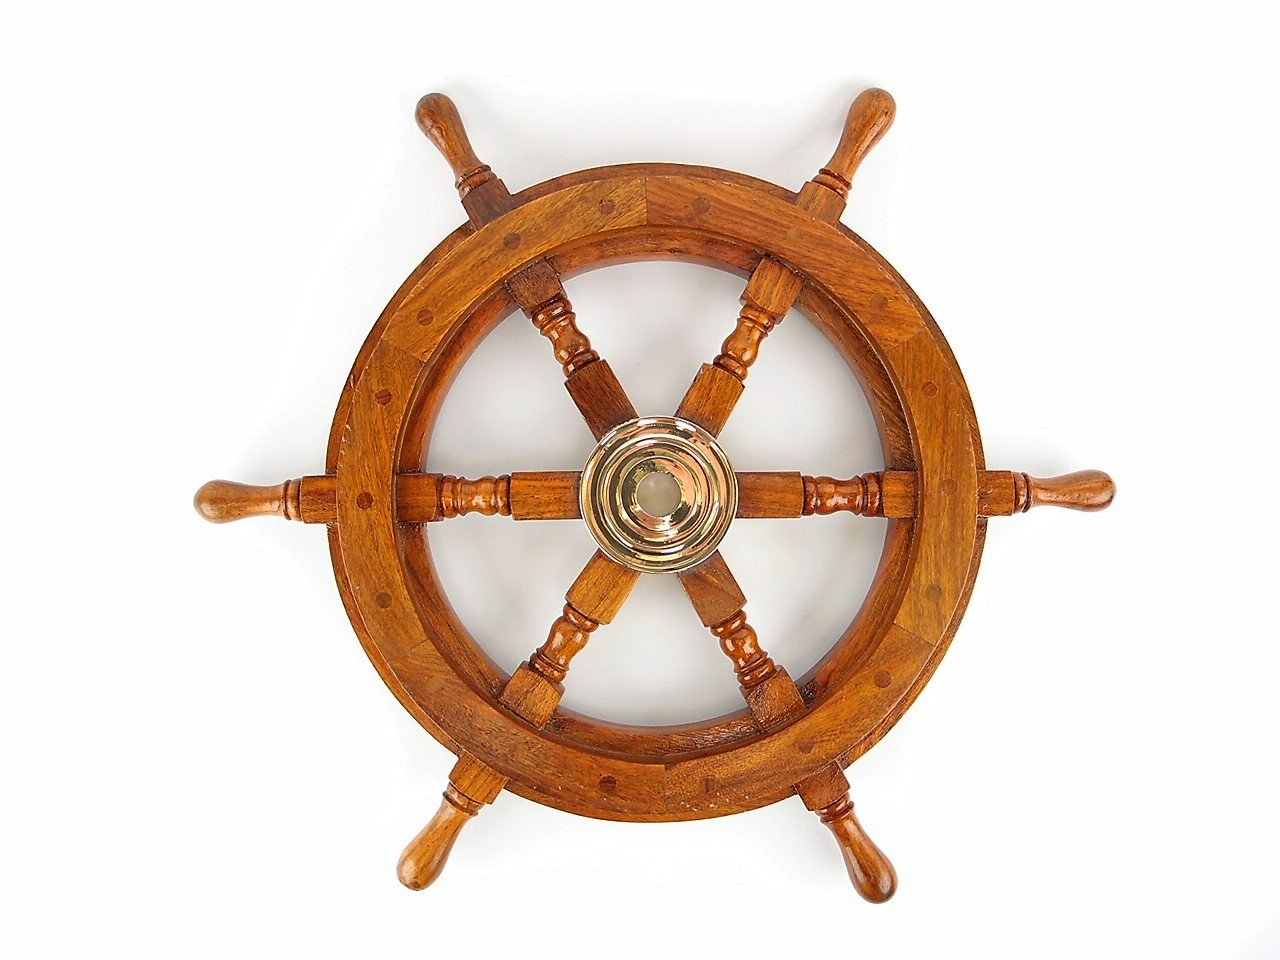 Brass Nautical Gifts - Ship's Wheel